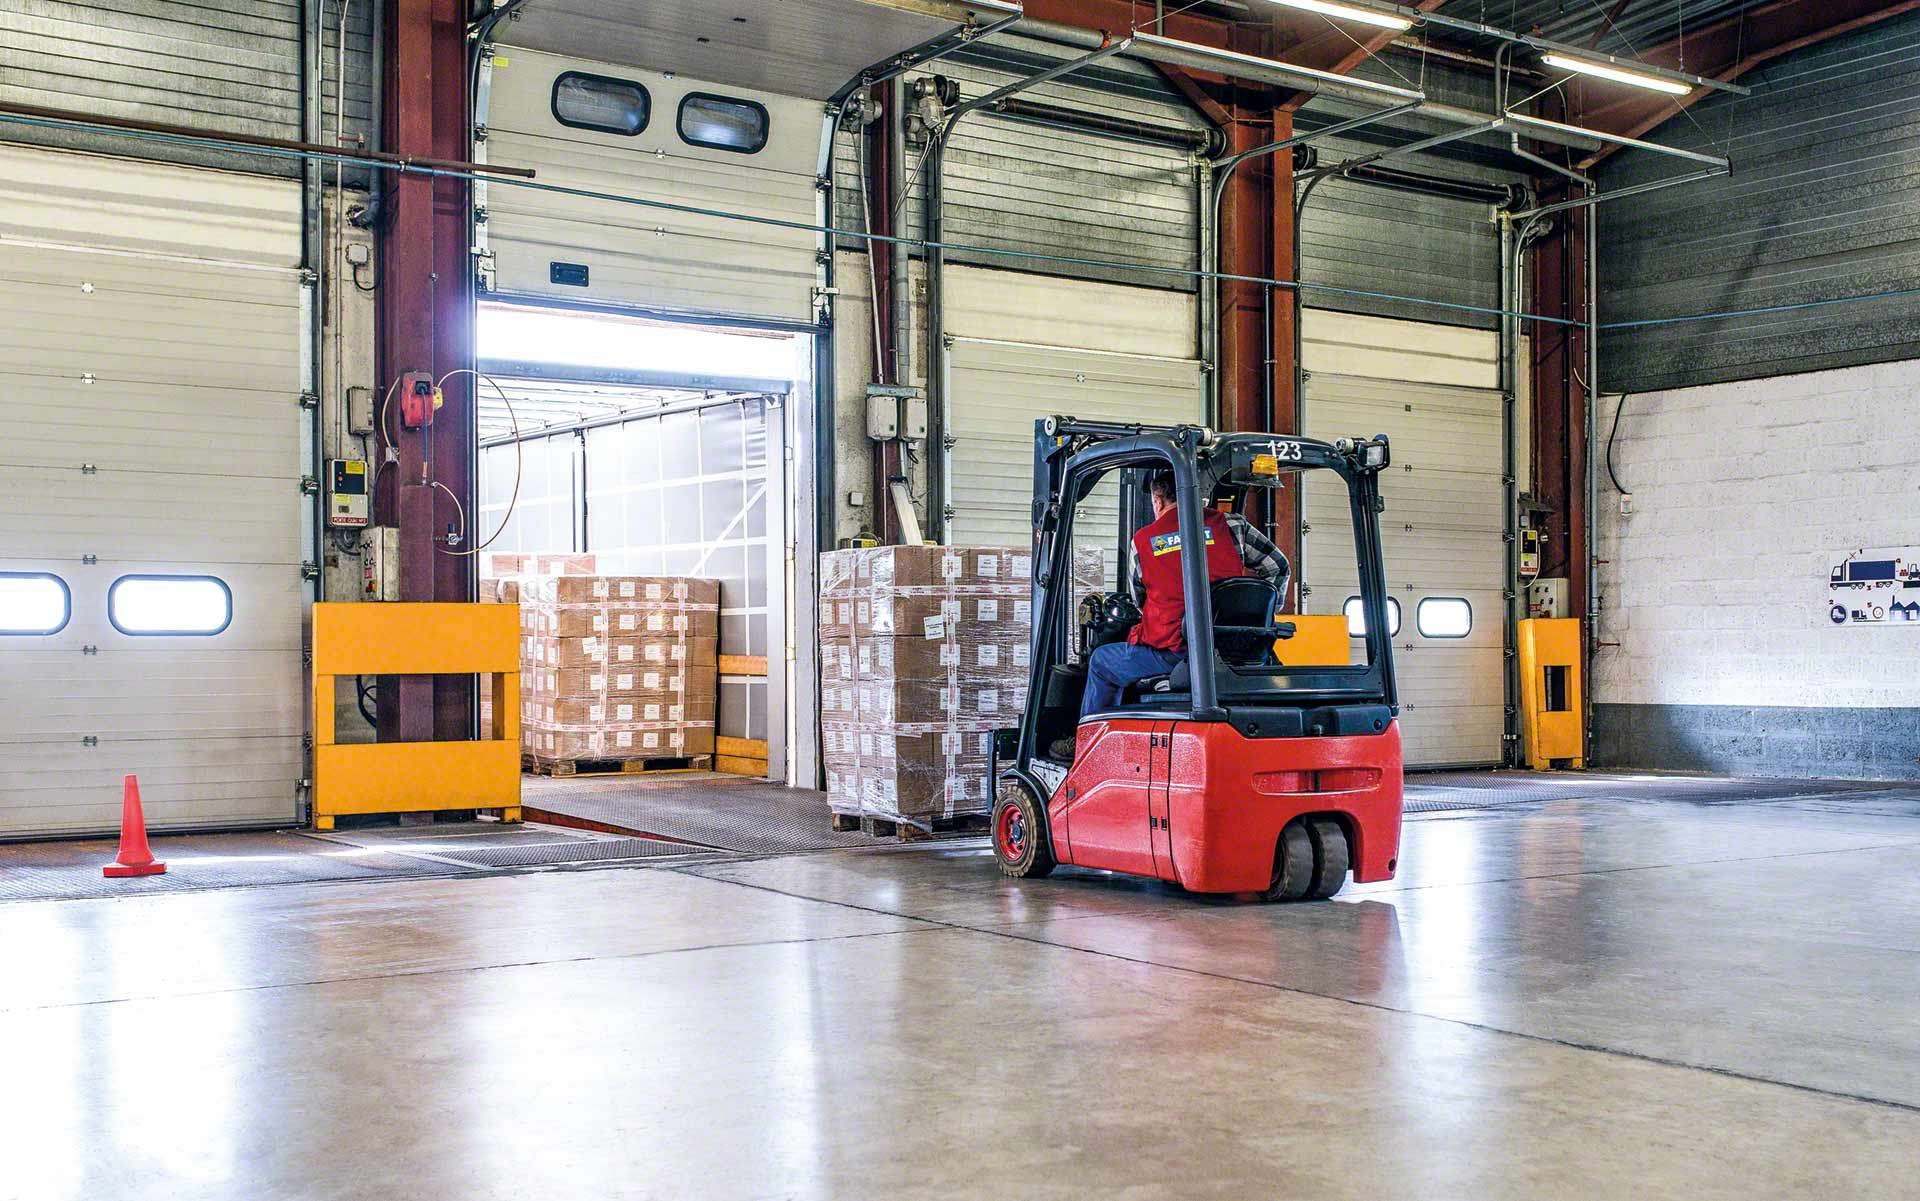 Truck loading is the process of placing goods onto the transportation vehicle